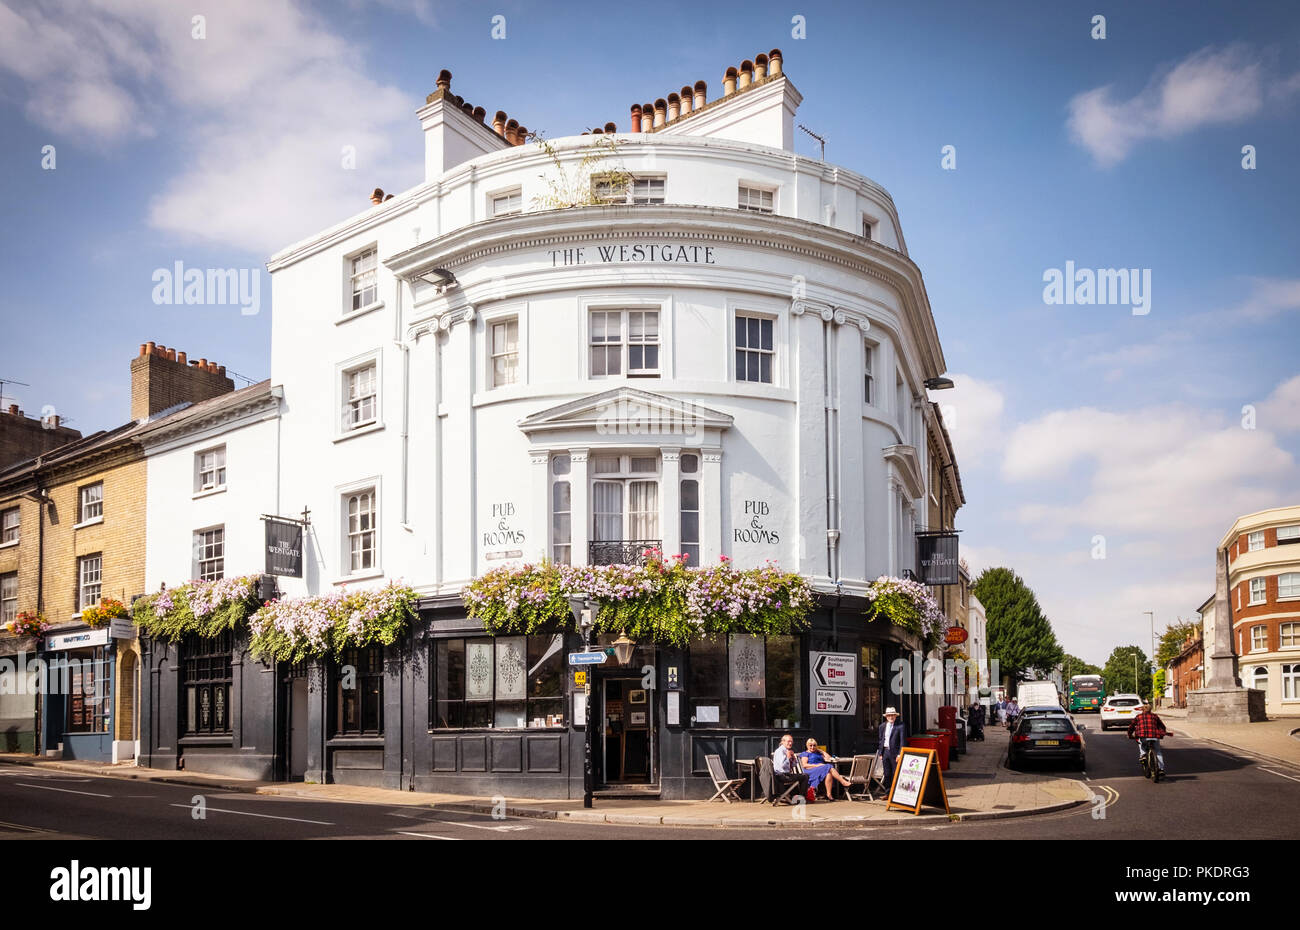 The Westgate Hotel pub in Winchester, Hampshire, UK - Stock Image